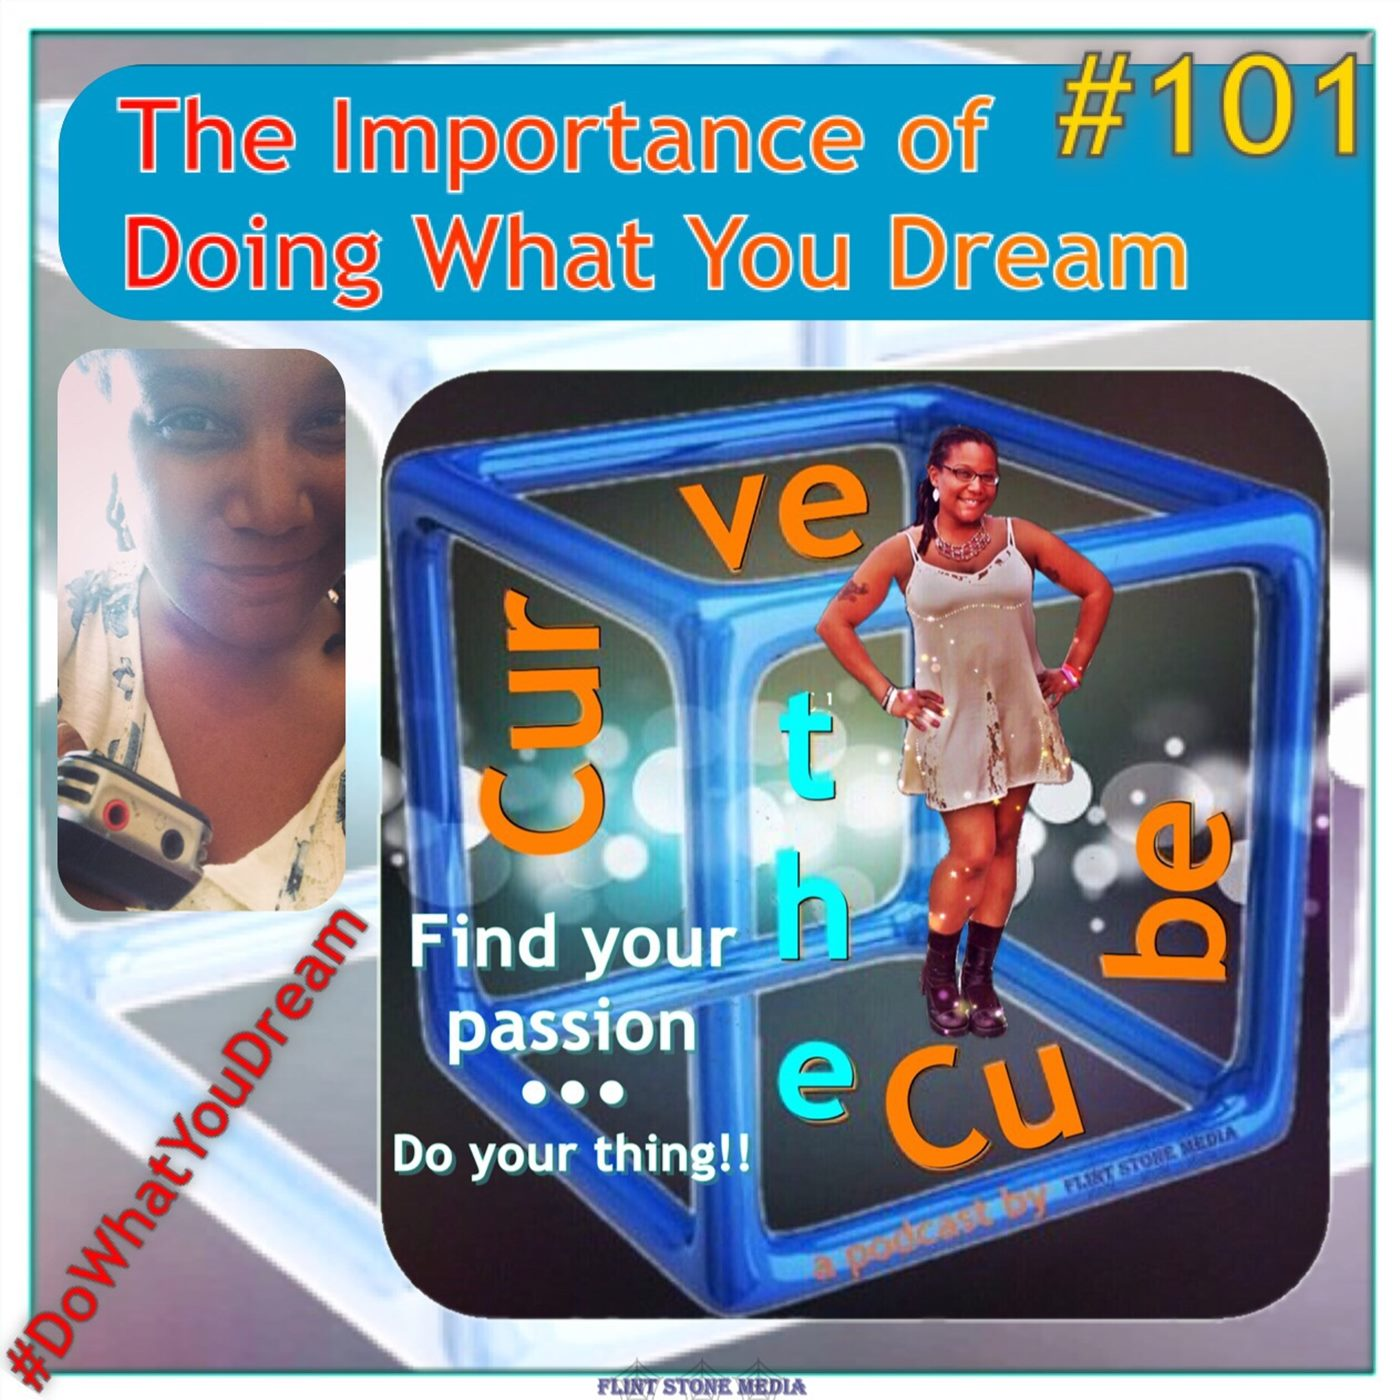 #101 - SOLOCAST - The Importance of Doing What You Dream - 20161105